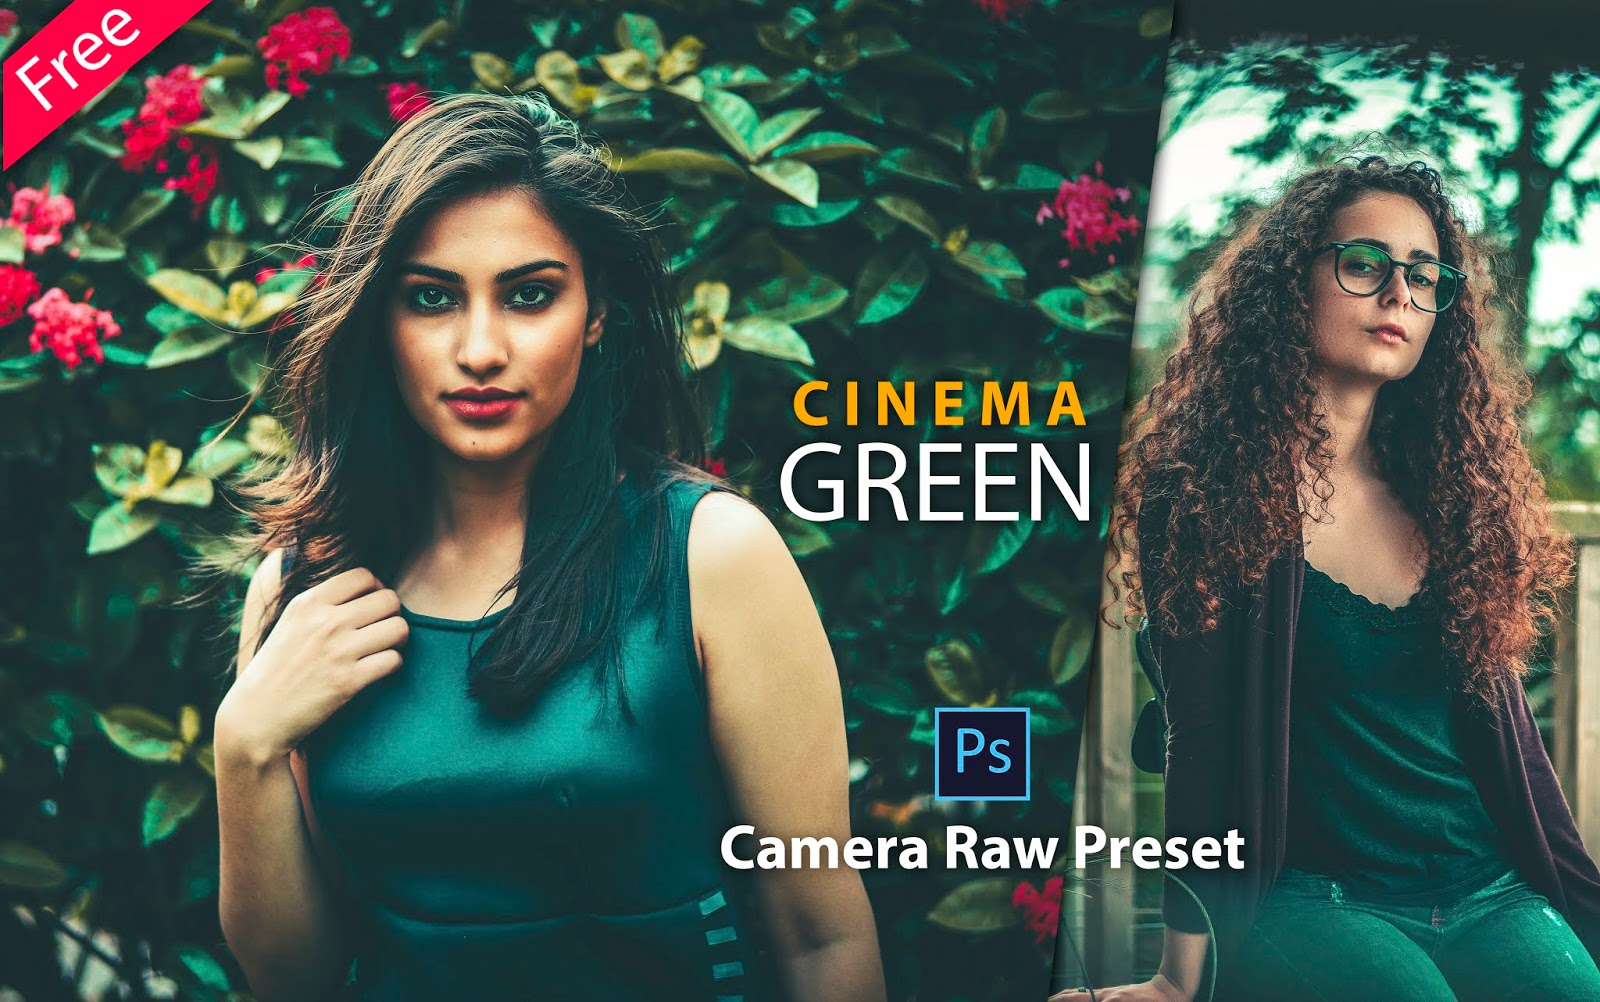 Download Cinema Green Camera Raw Preset for Free | How to Edit Your Photos with Cinematic Green Effect in Photoshop